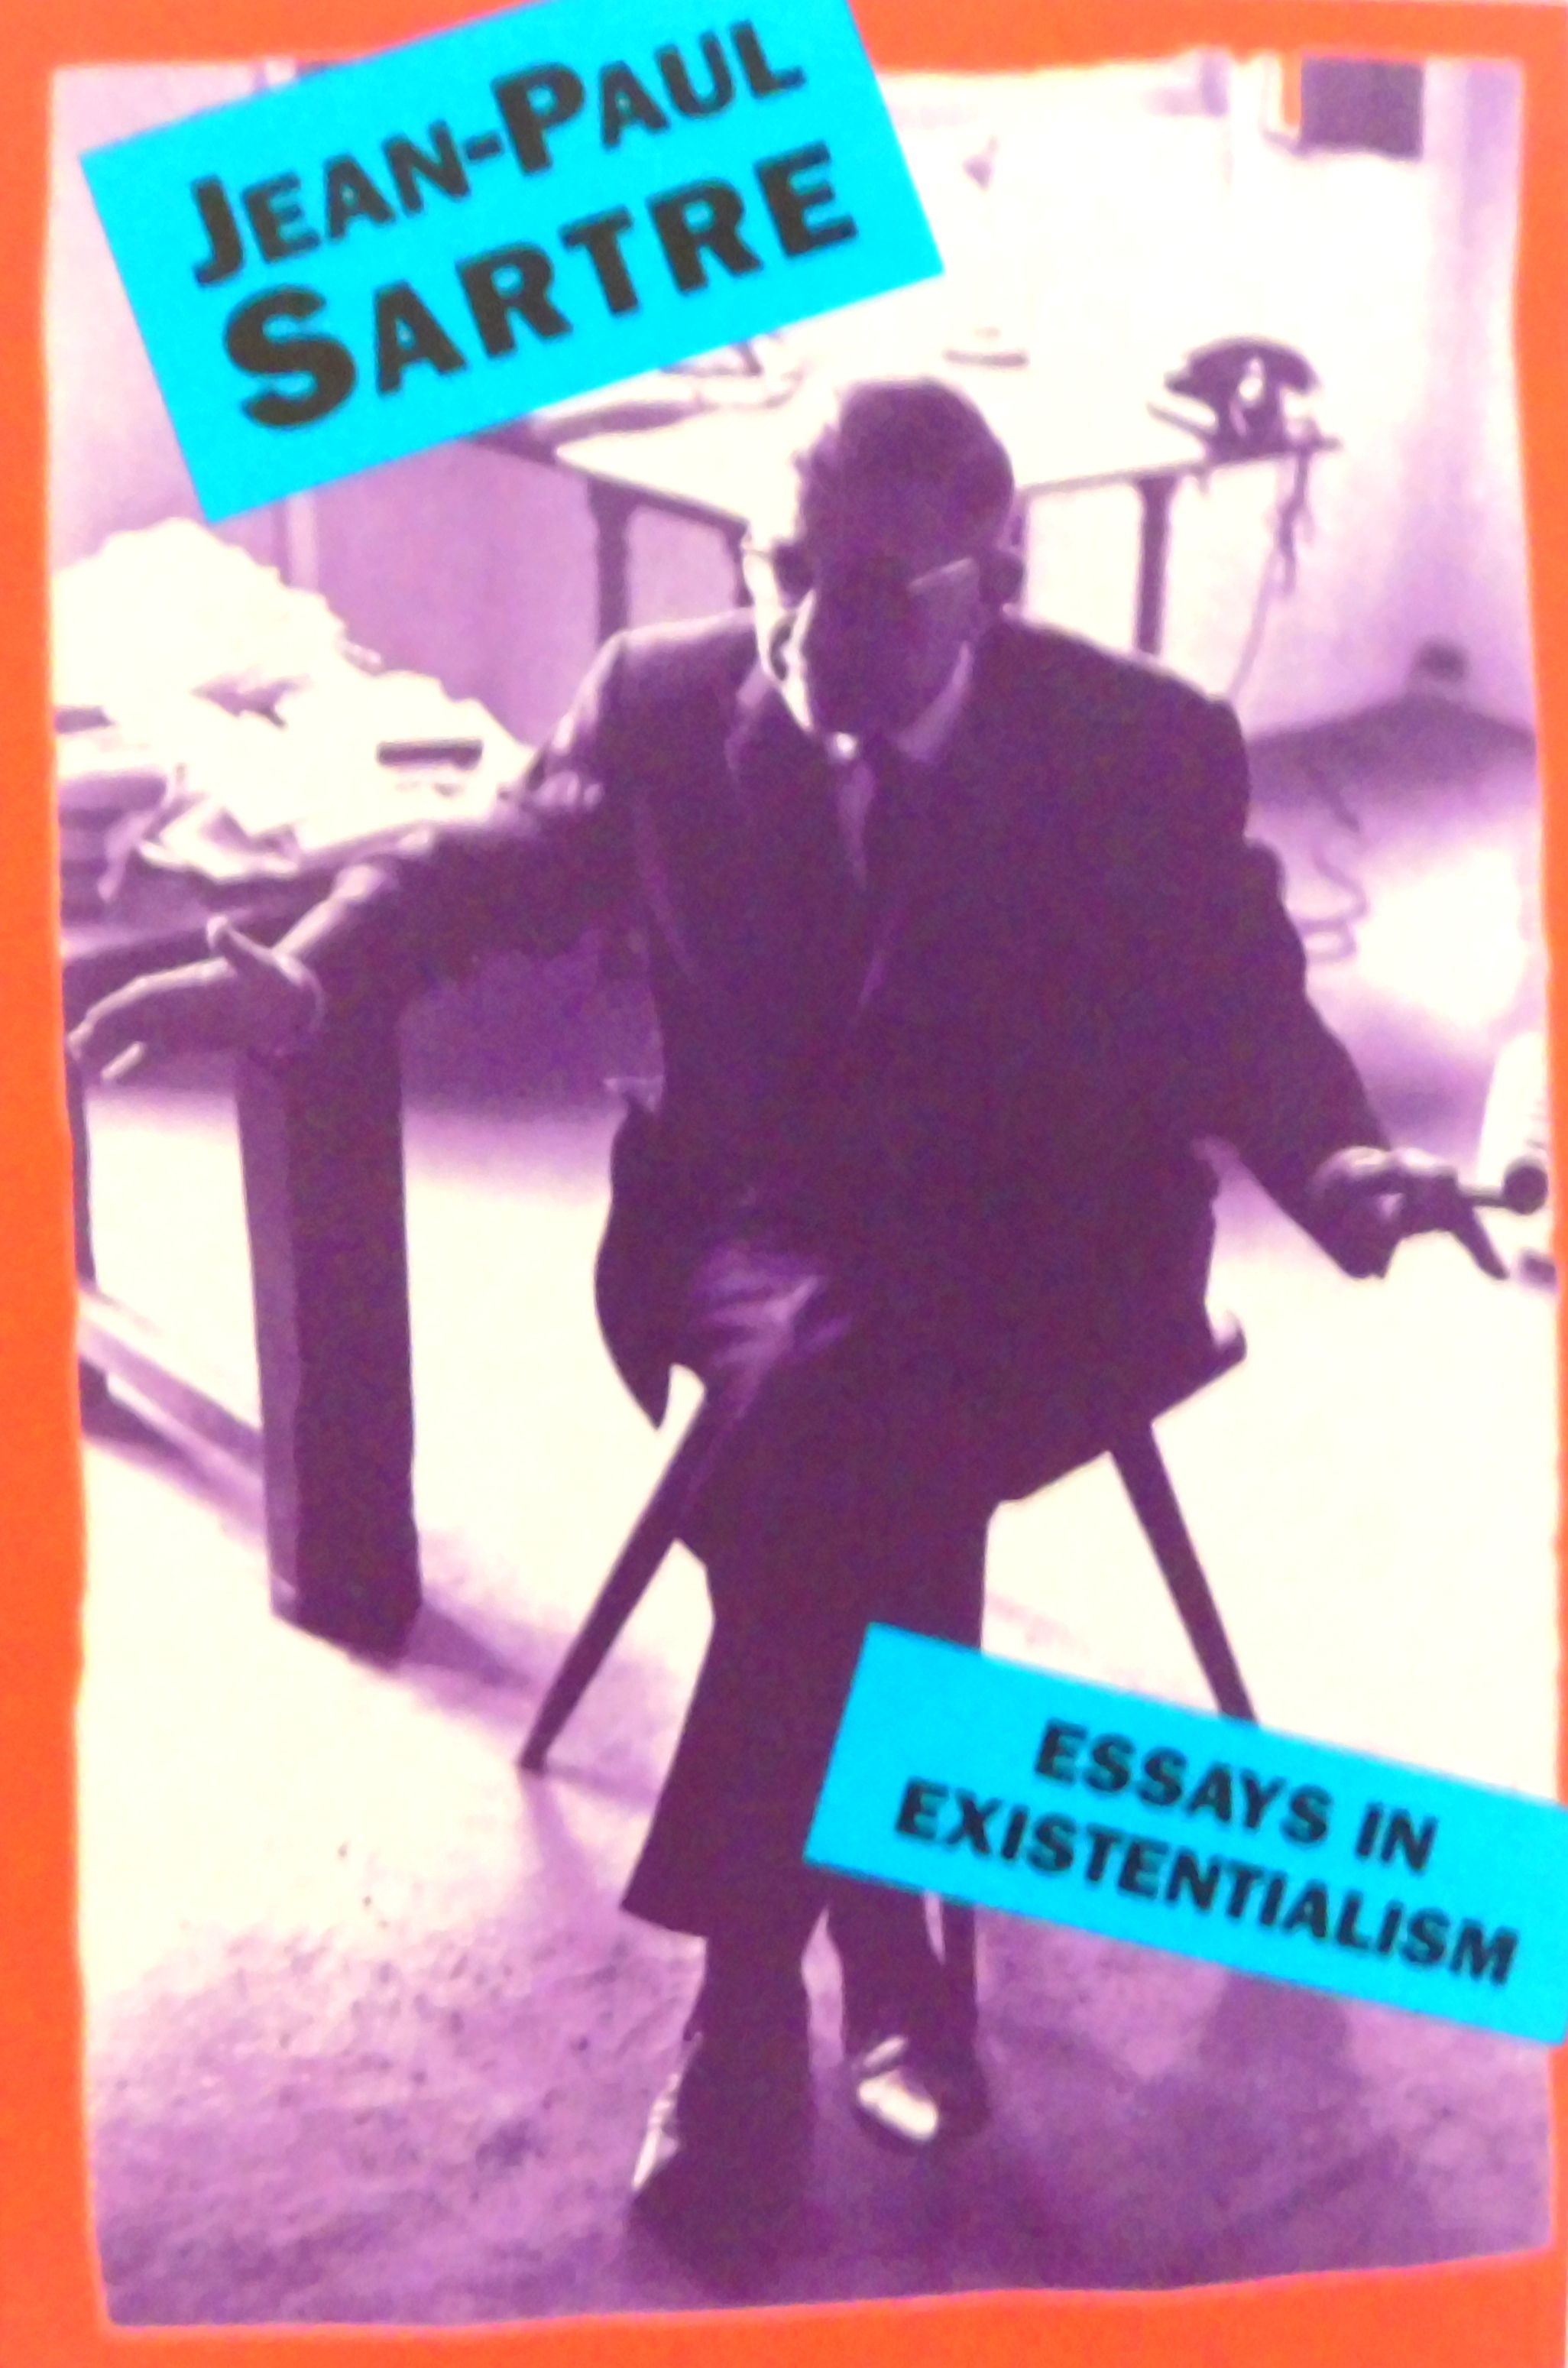 007 X Essay Example Essays In Outstanding Existentialism Pdf Sartre Full